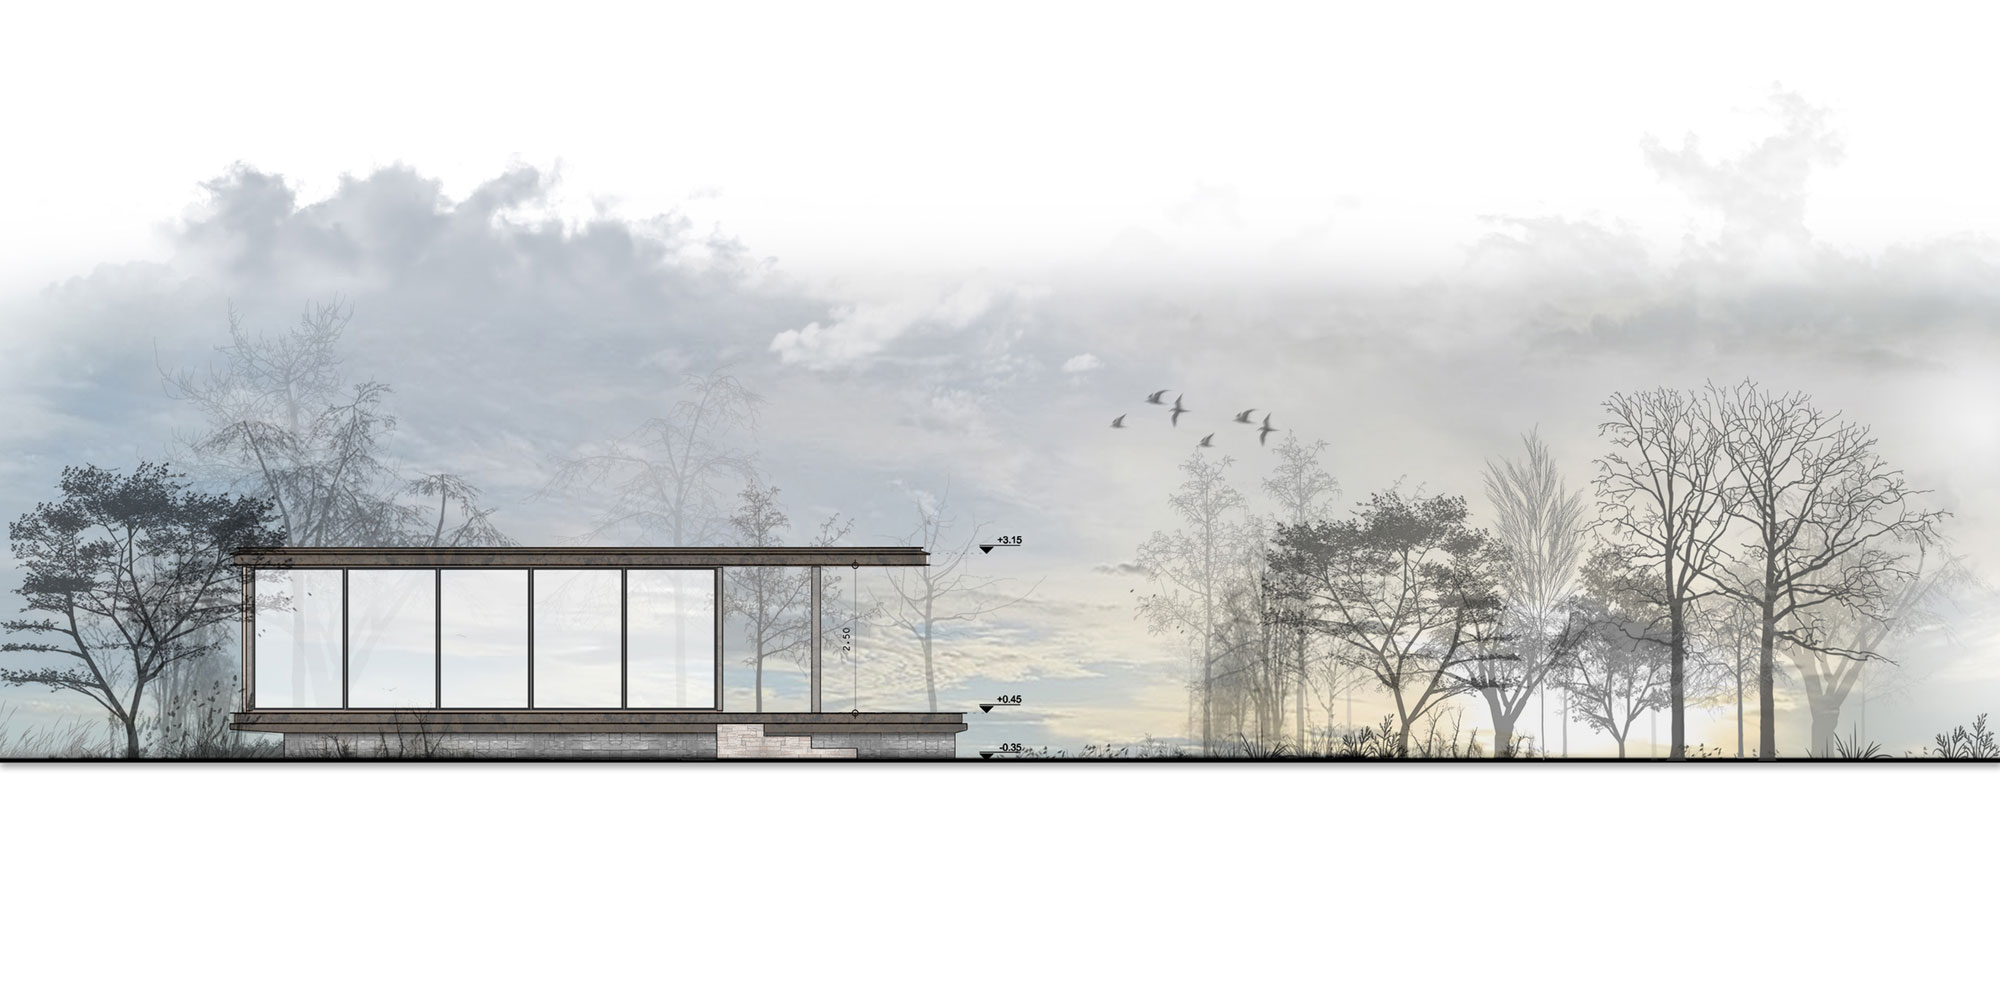 Pavilion at Architect's Residence in Nicosia by Kythreotis Architects-19